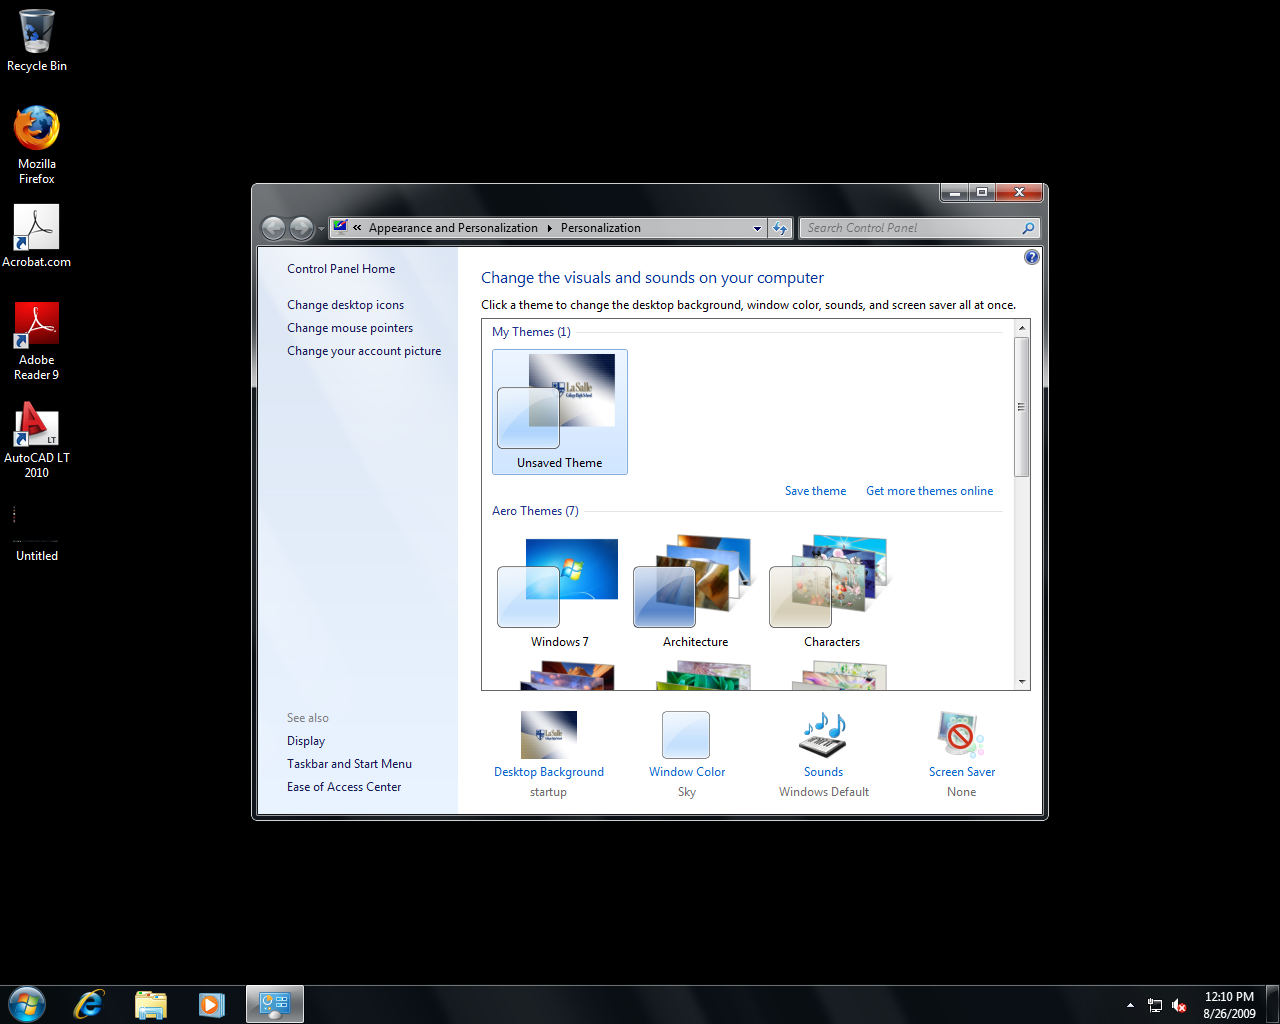 download Wallpaper via Group Policy and Windows 7 [1280x1024 1280x1024